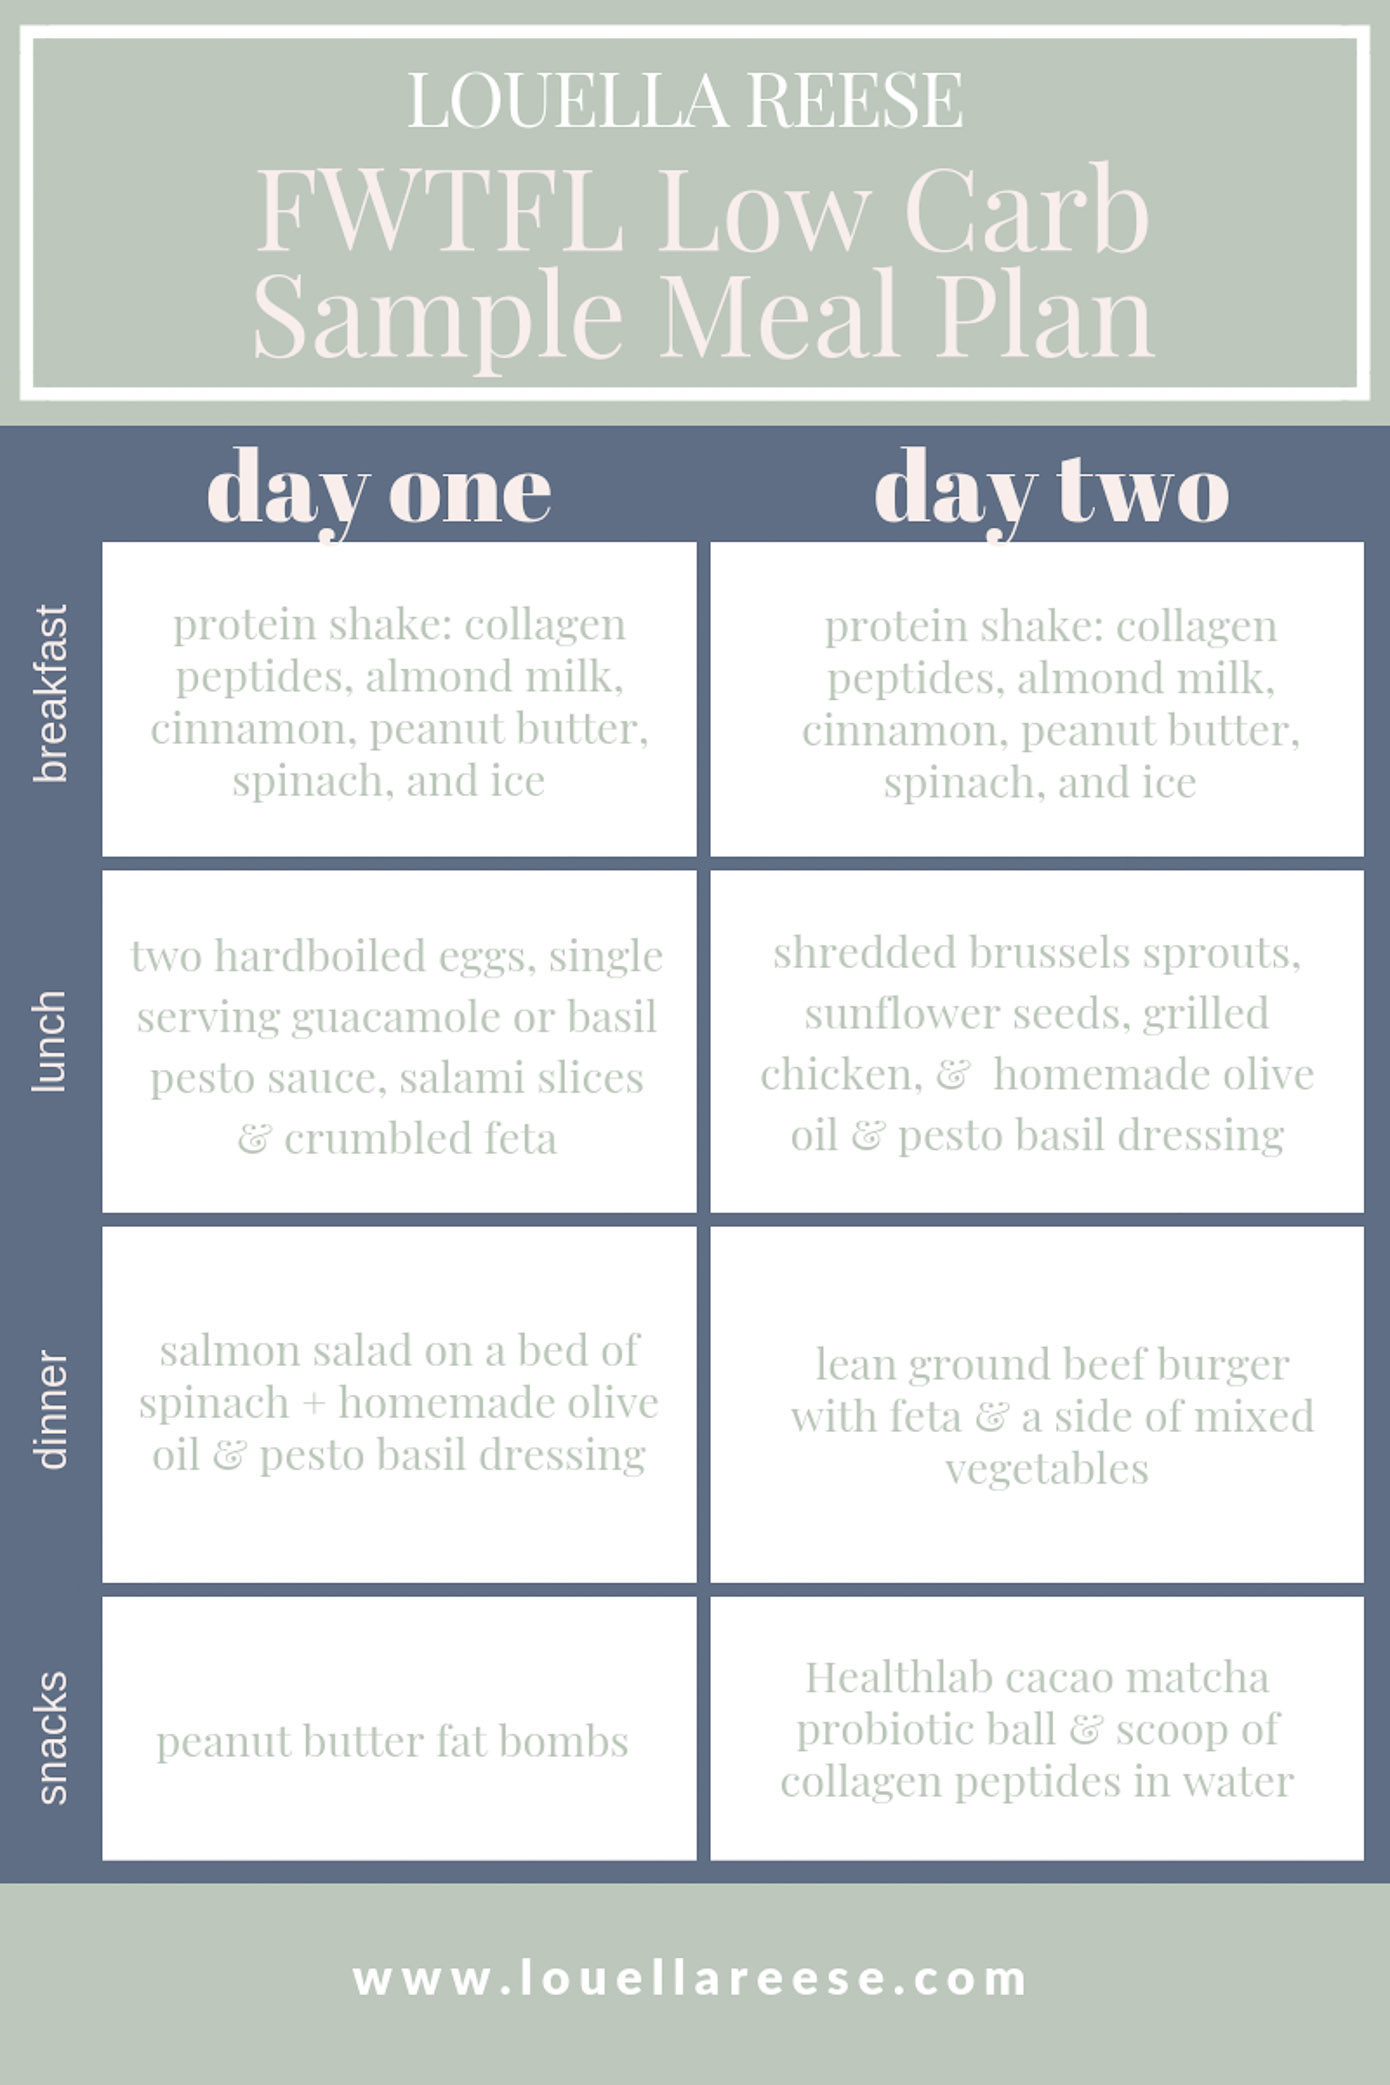 FWTFL Low Carb Meal Plan | Low Carb Day Meal Ideas featured on Louella Reese